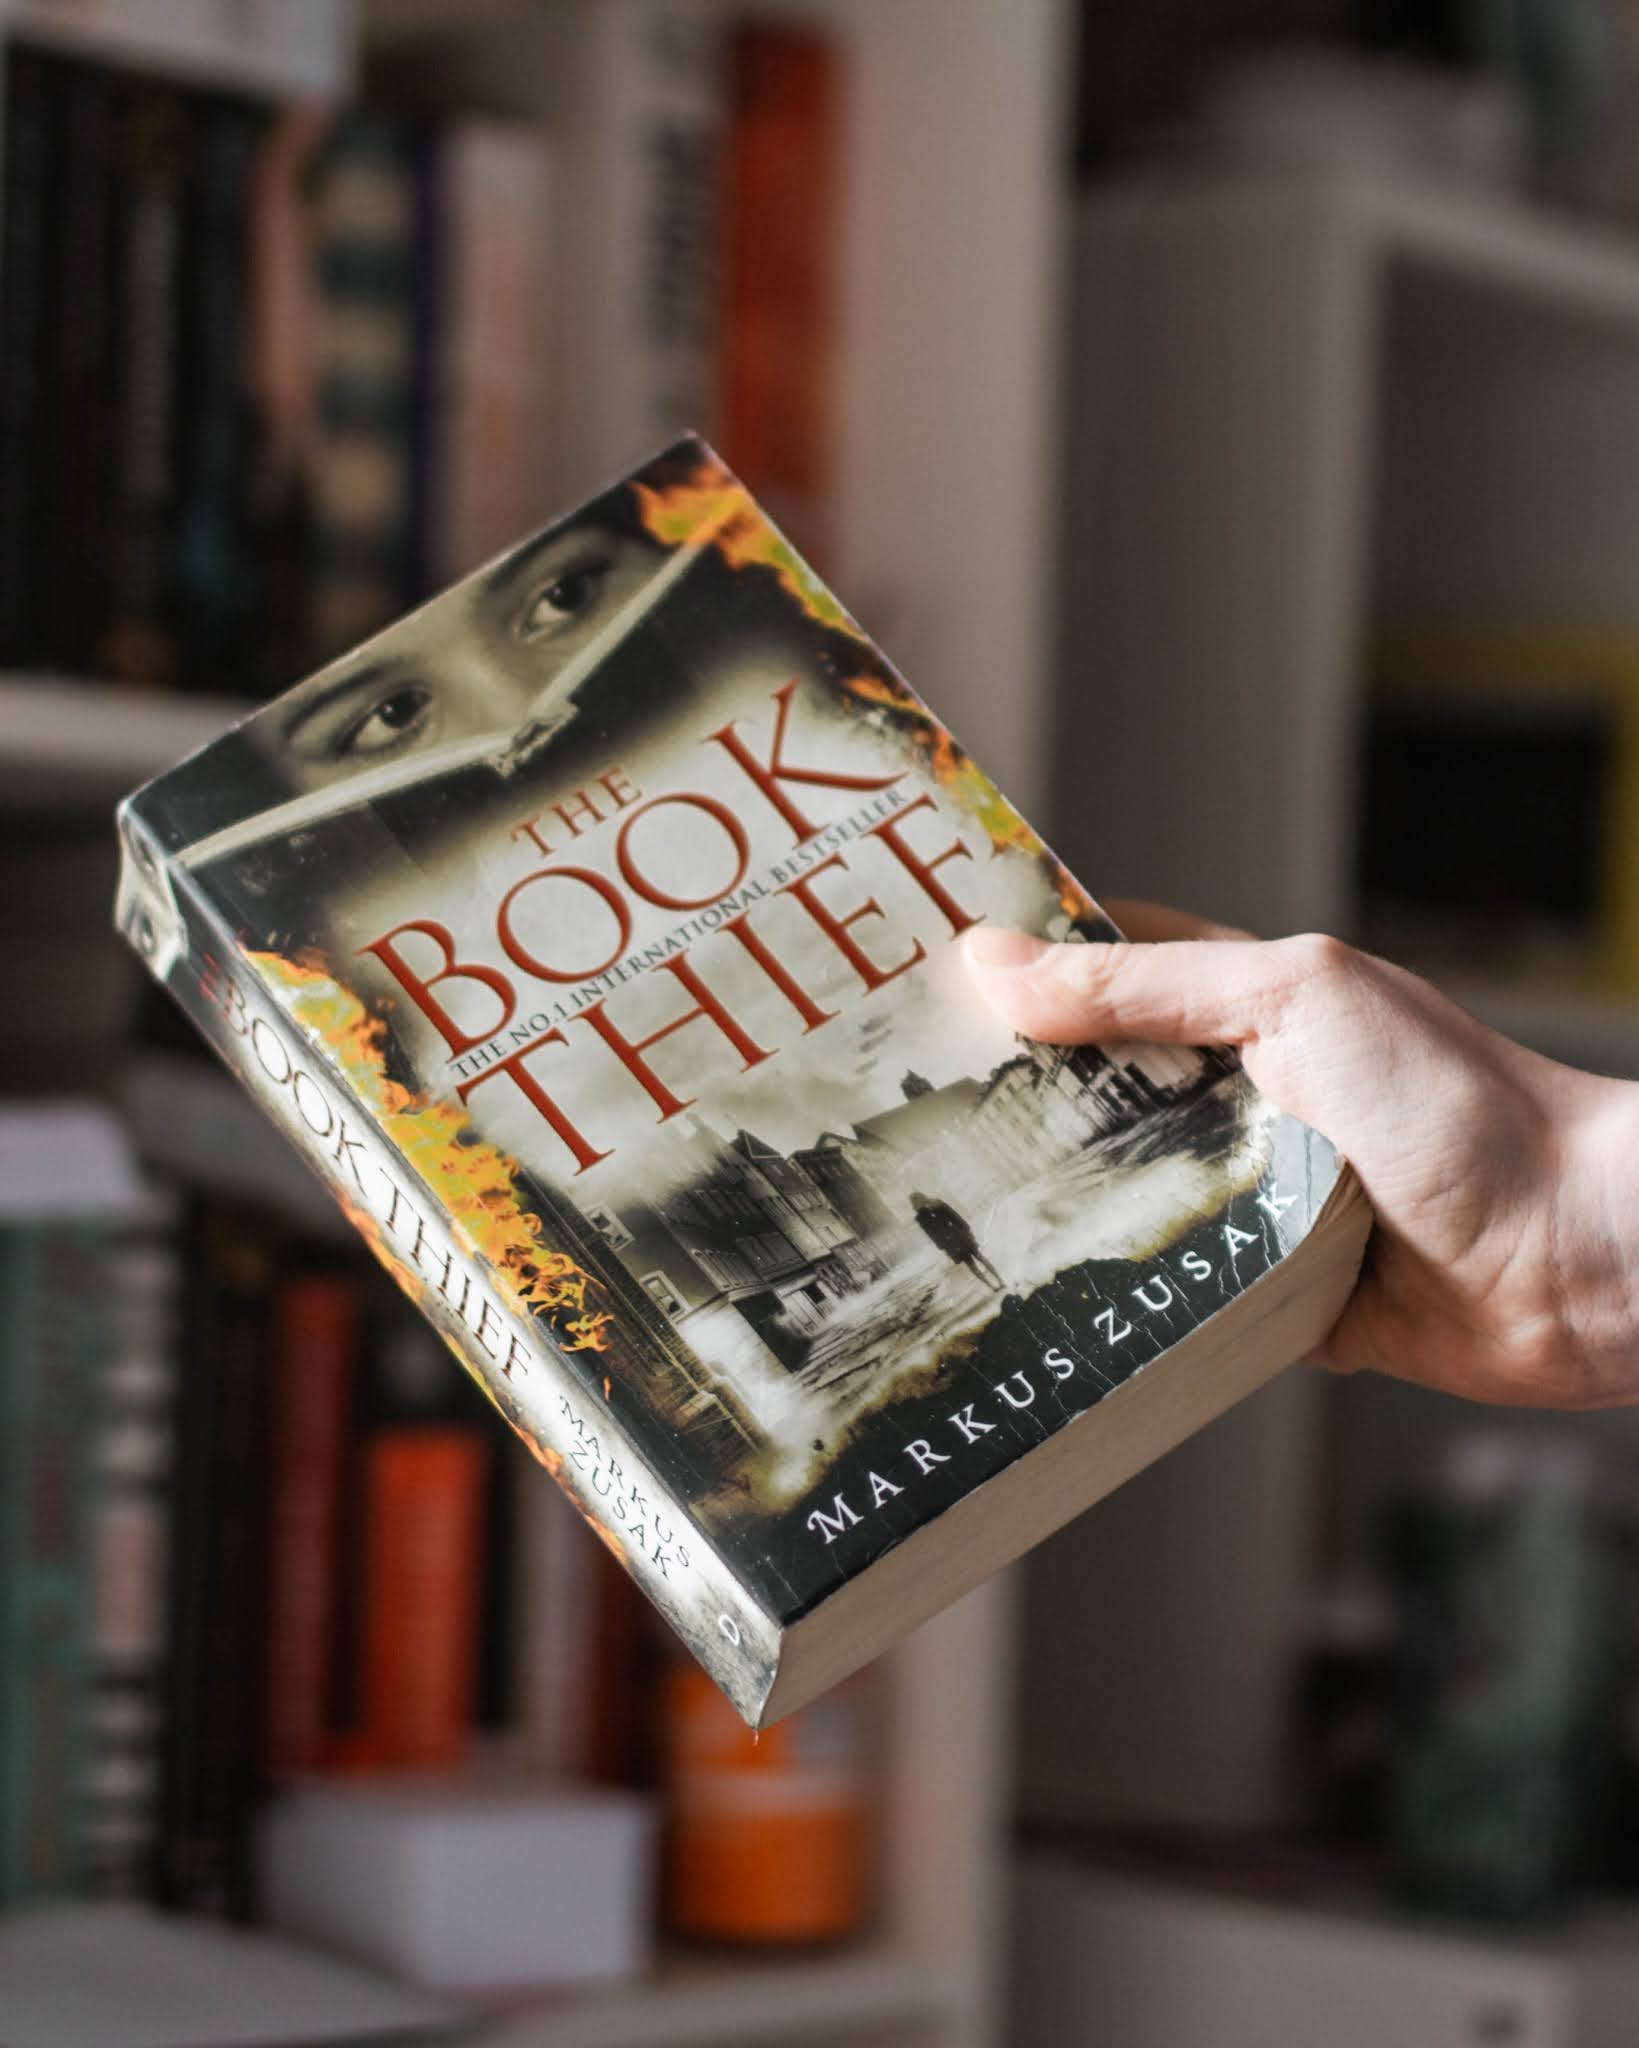 hand holding the book thief by markus zusak in front of bookcase